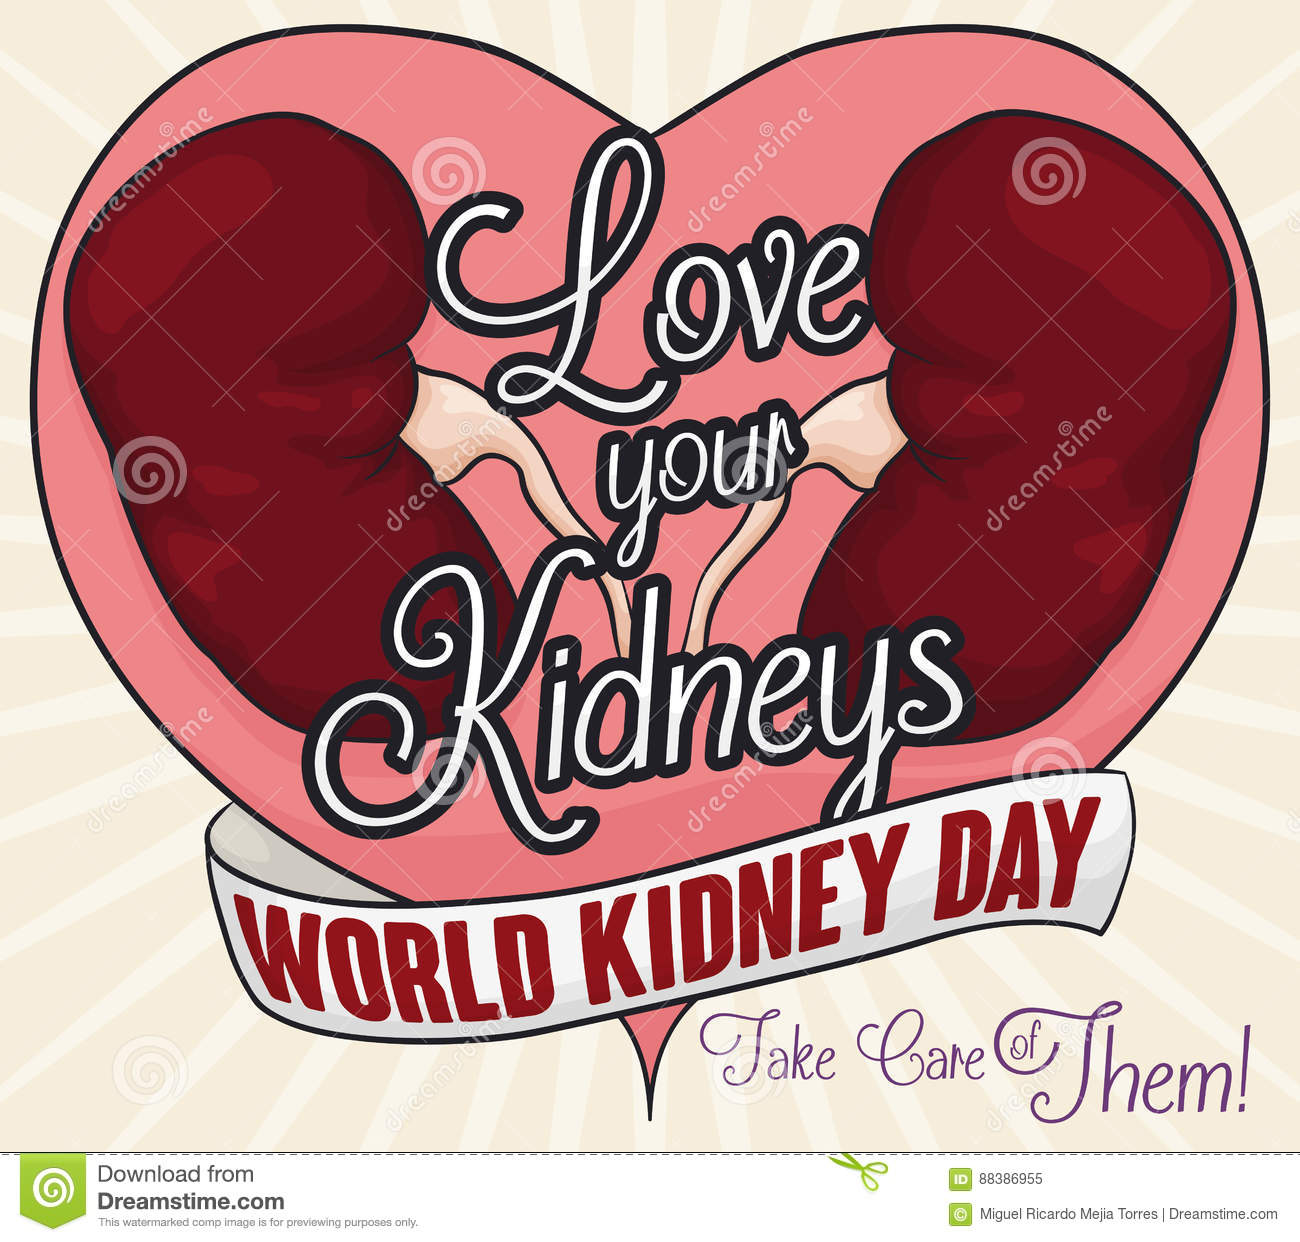 Healthy Kidneys and Greeting Message of Love and Renal Care, Vector Illustration